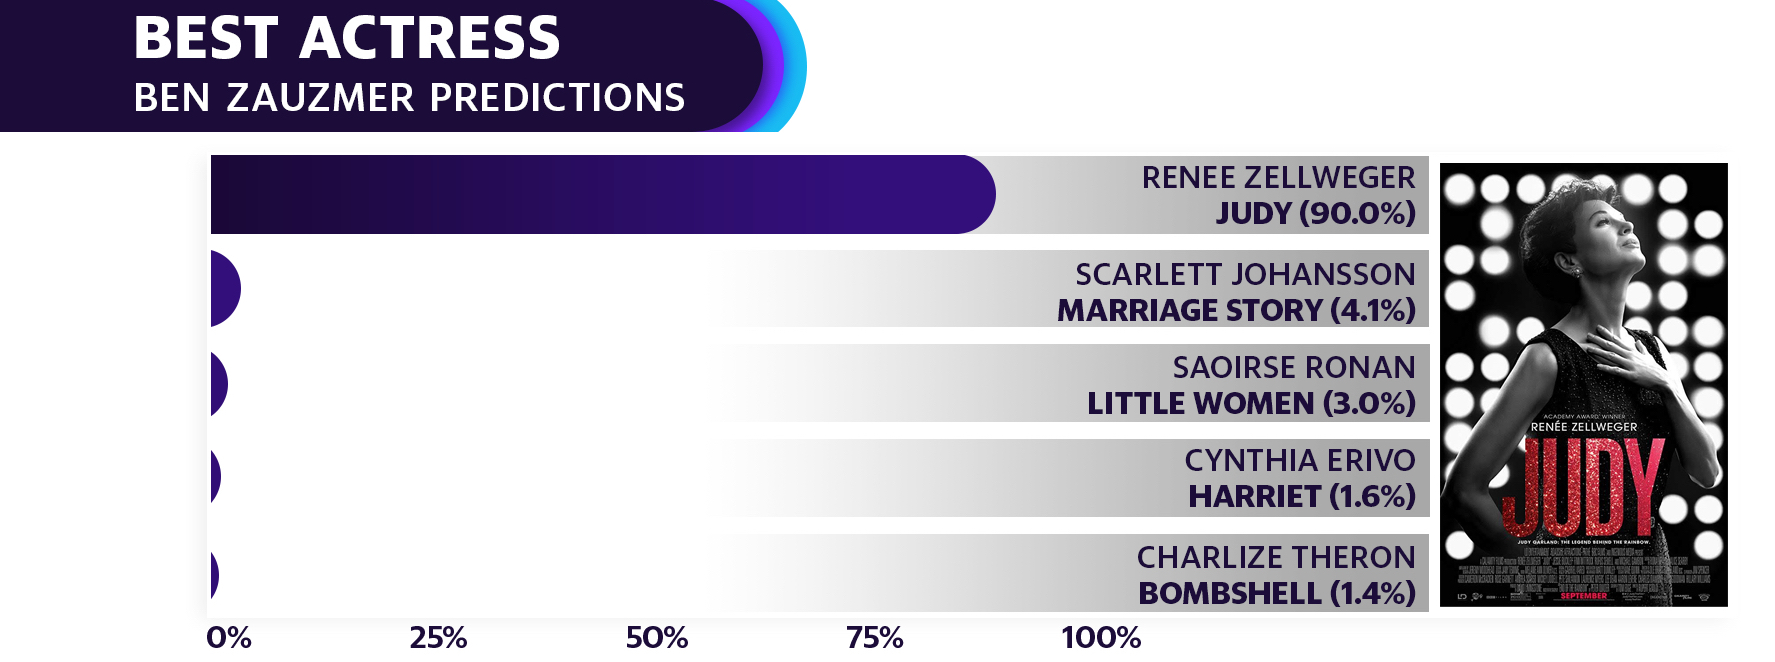 Renee Zellweger is the heavy favorite to win Best Actress, according to Zauzmer's modeling.